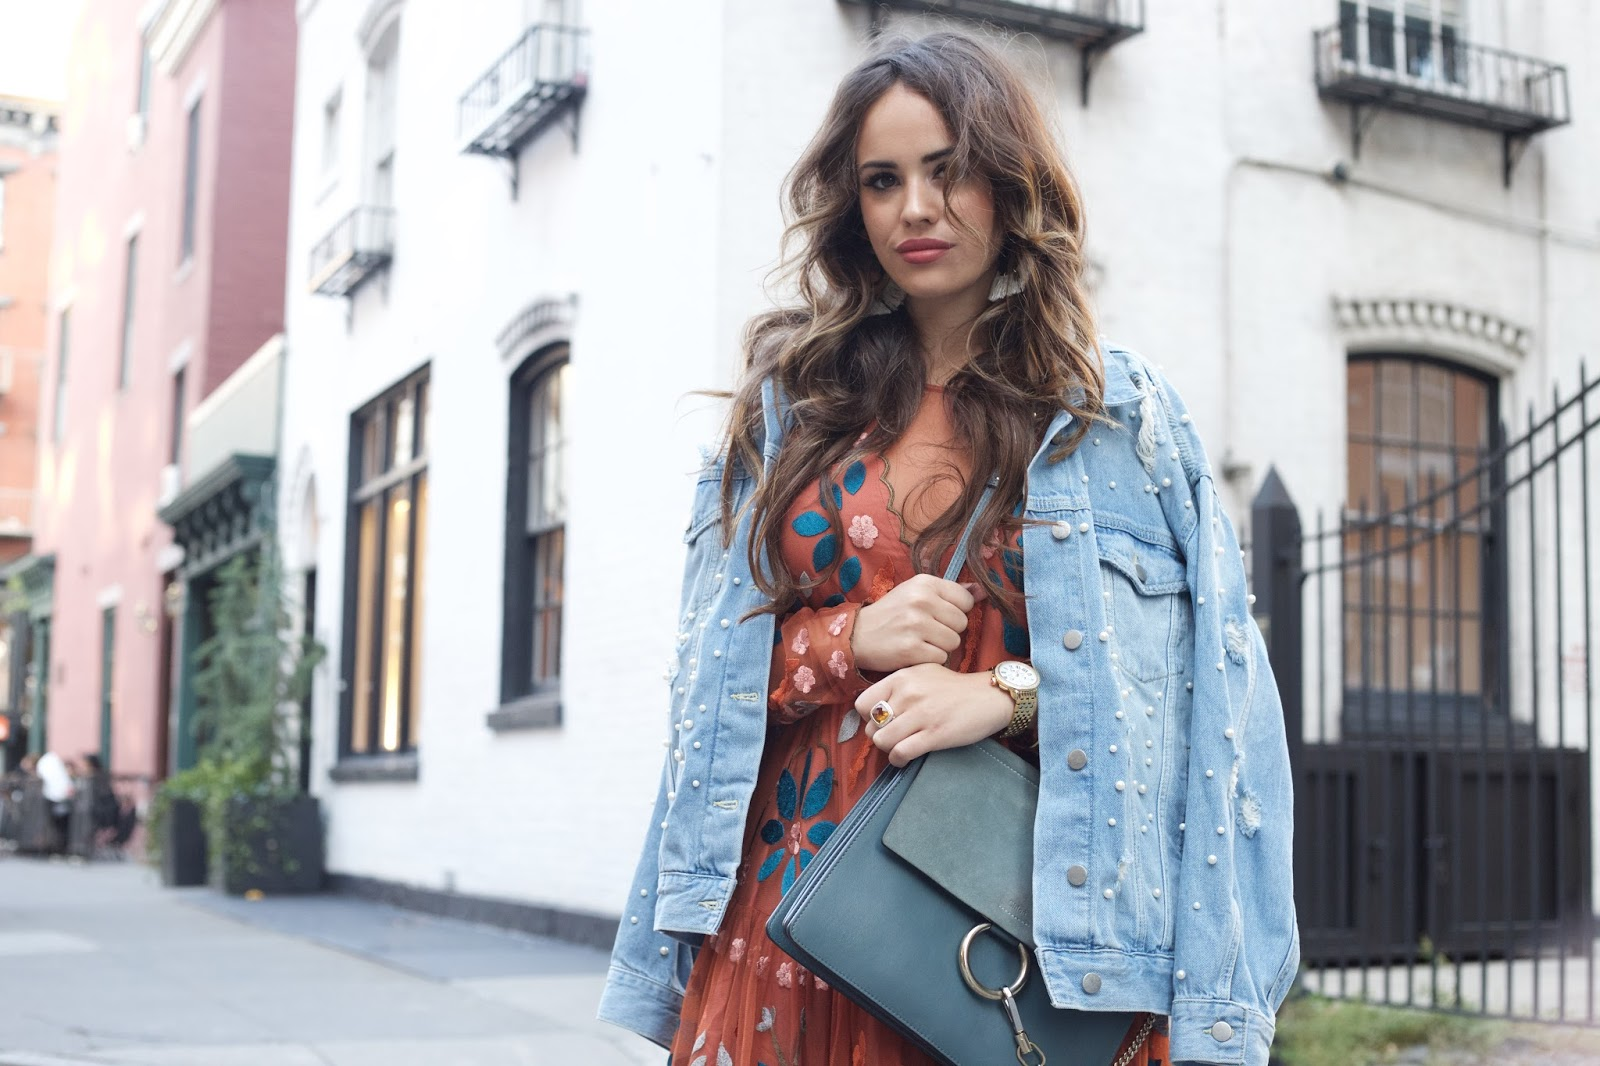 fall dress, transitional dress, embroidered dress, orange dress, free people dress, oversized denim jacket, embroidered denim jacket, gold heels, free people denim jacket, how to dress for fall in nyc, nyc style, top nyc blogger, nyc blogger style, elle harper, elle harper blog, new york style, shoulder jacket, funky fall style, what to wear in nyc in september, what to wear in nyc in october, west village style, new york street style, city style, west village girl